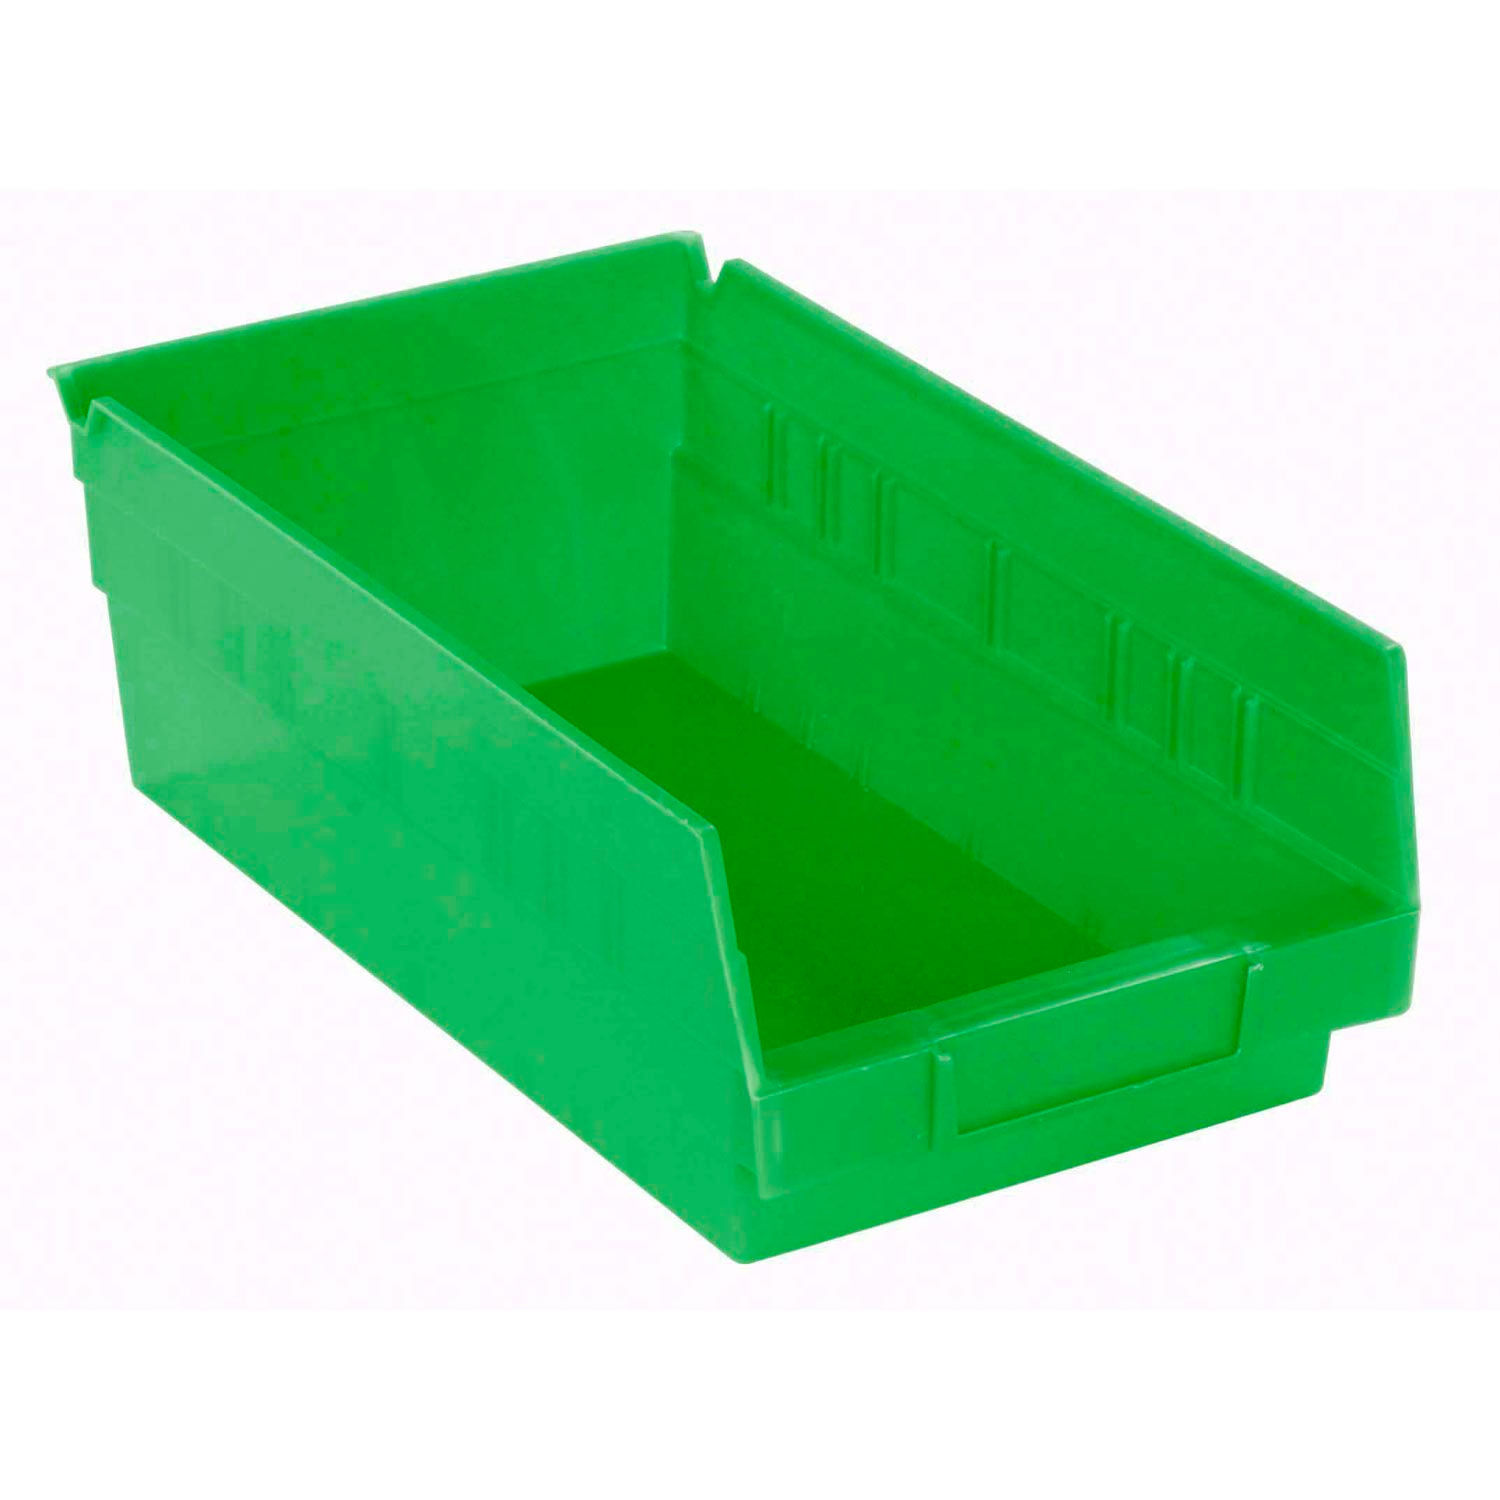 "Akro-Mils 30130 Plastic Shelf Bin Nestable - 6-5/8""W x 11-5/8""D x 4""D Green, Lot"